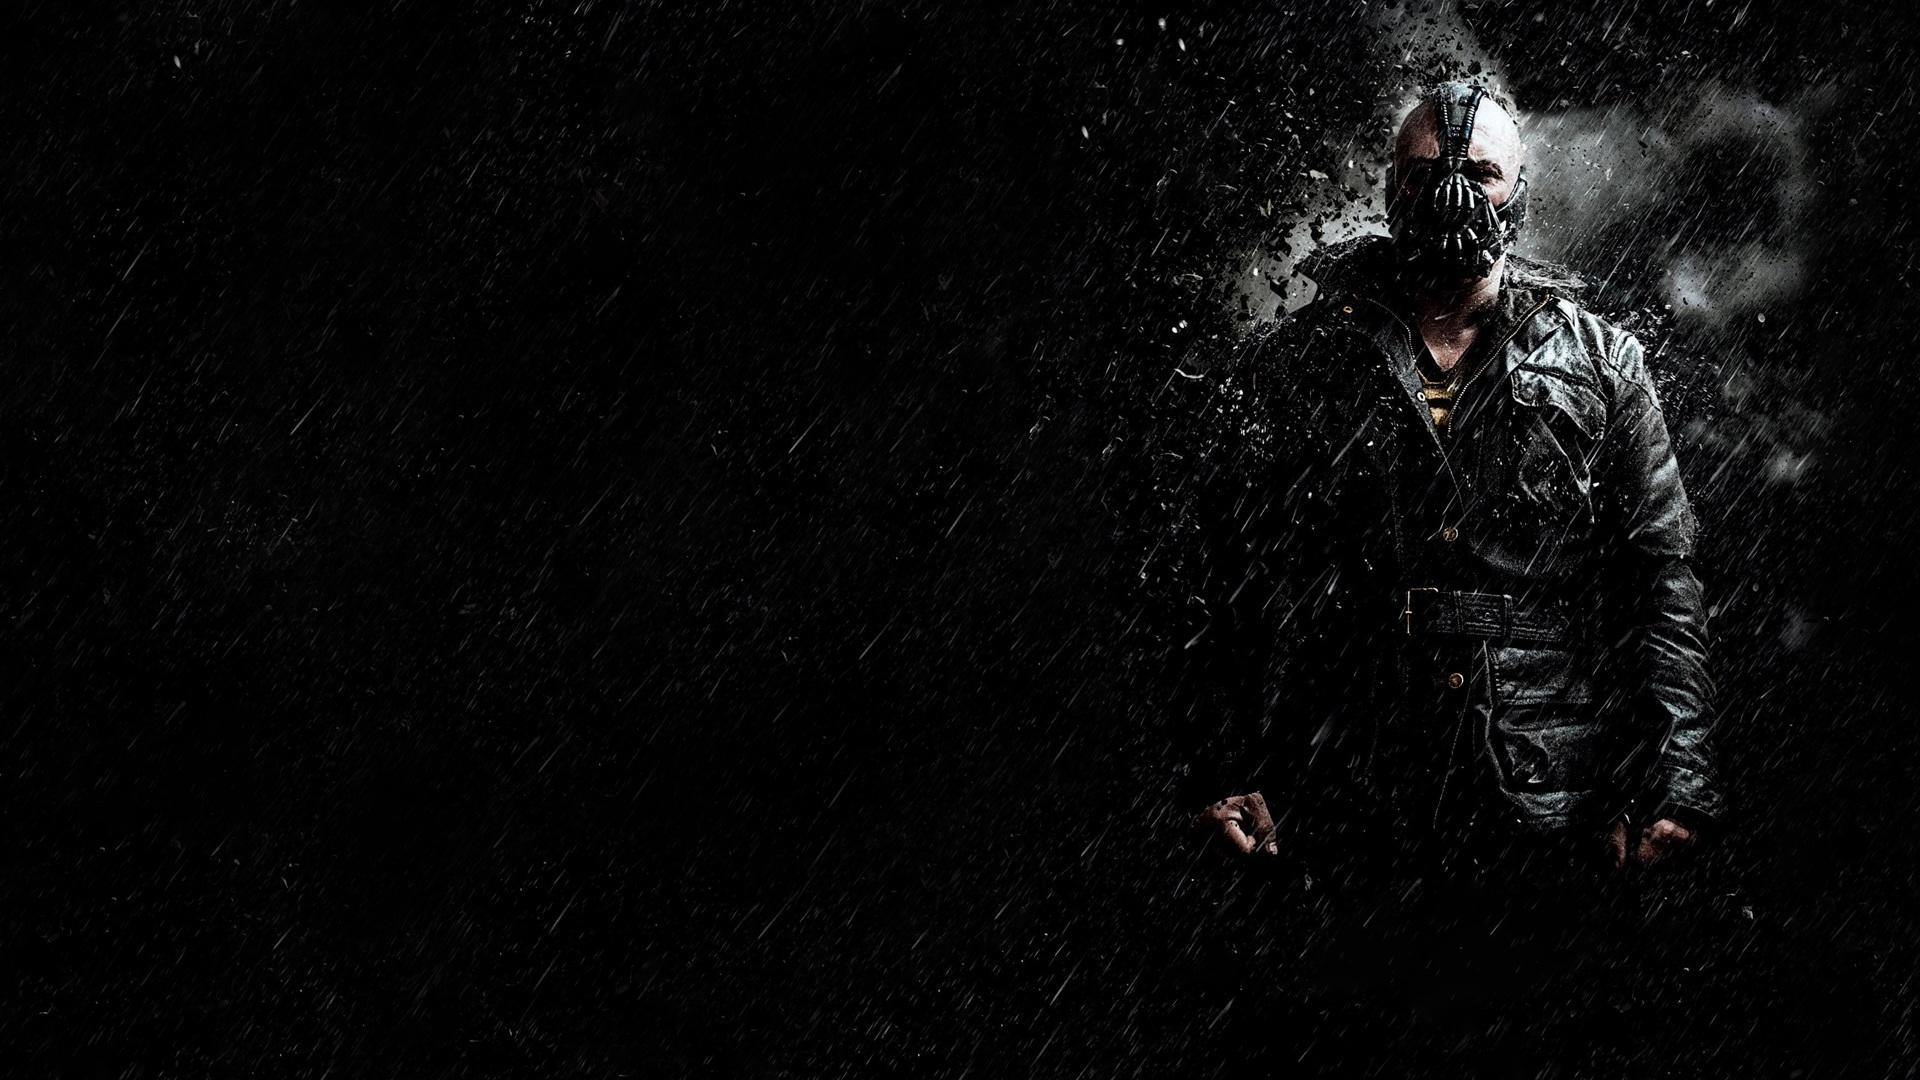 tom hardy warrior wallpaper hd